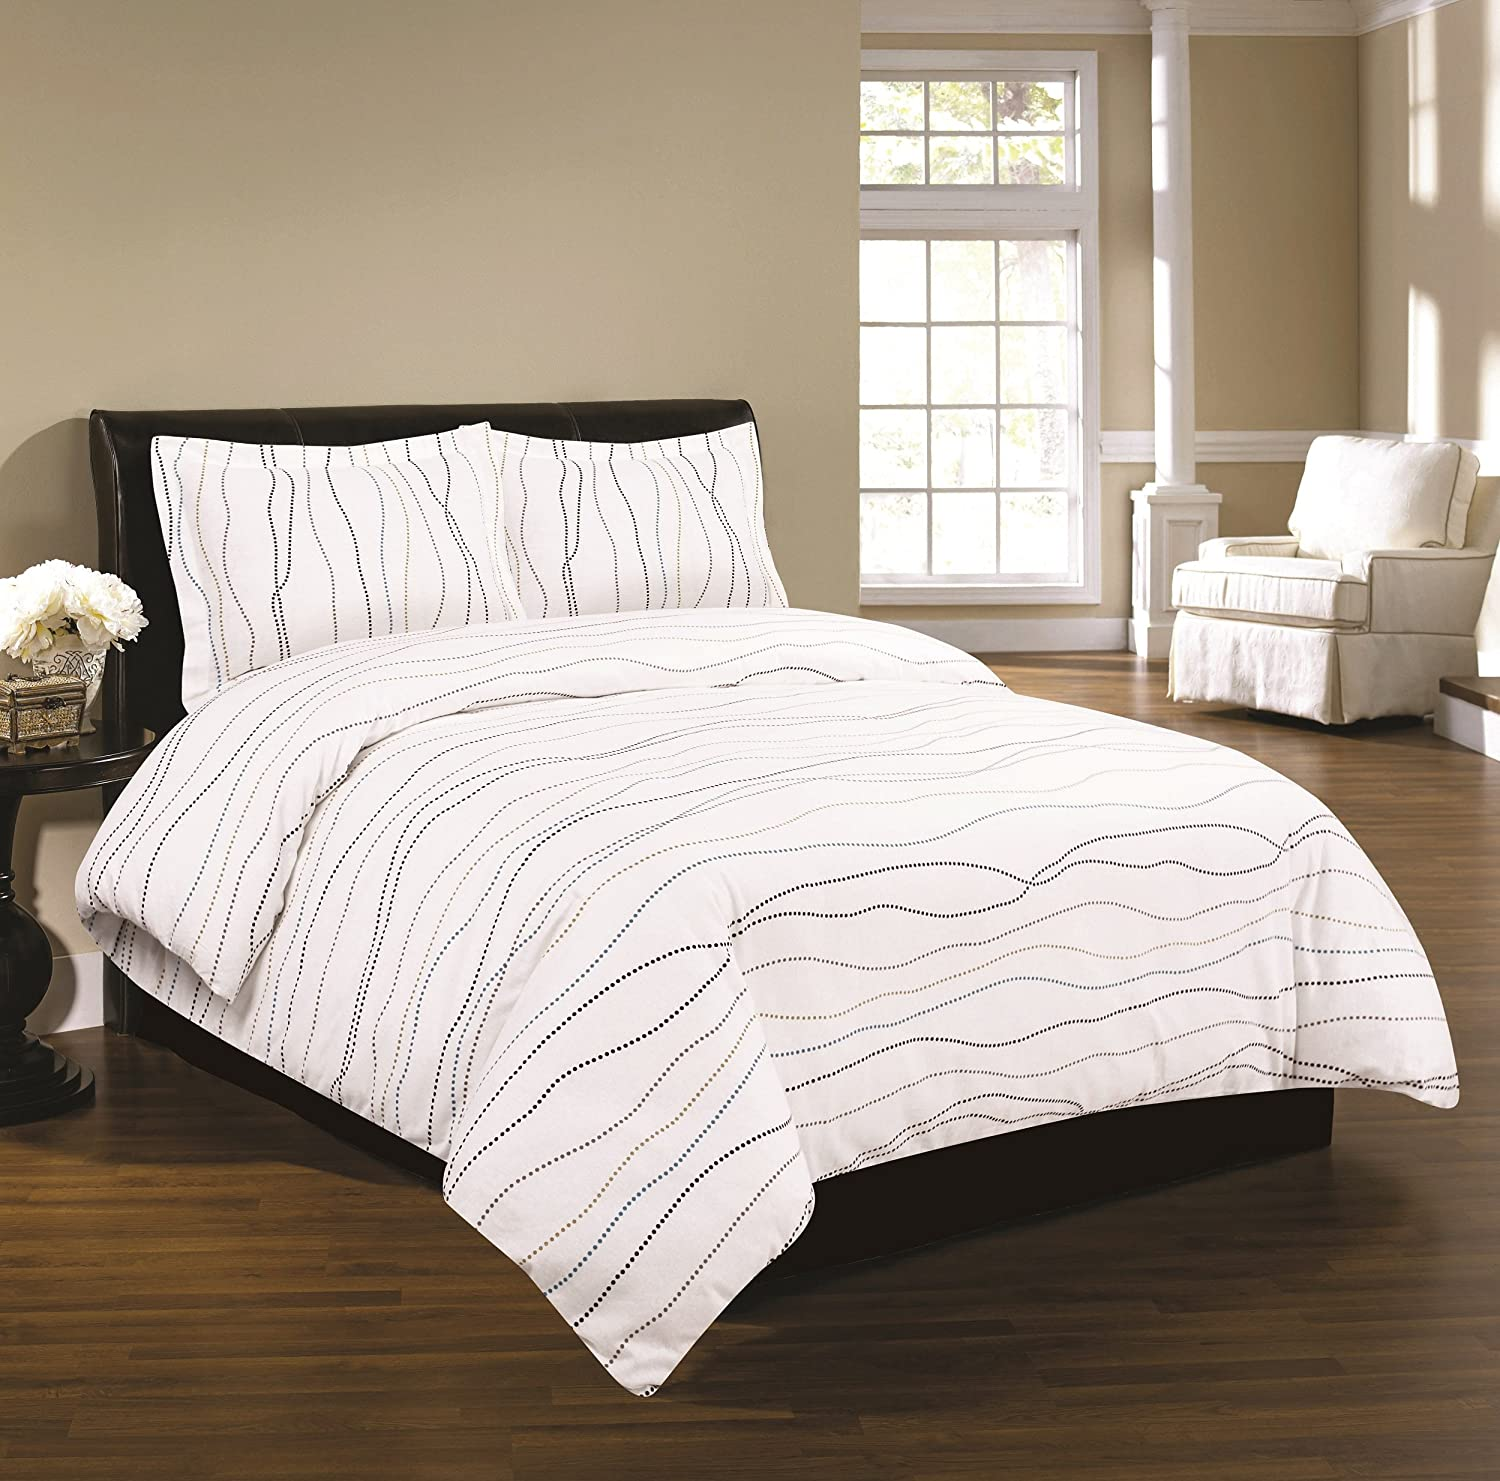 bed regarding gray sets flannel size inform image covers for duvet bedroom queen the cover of walmart